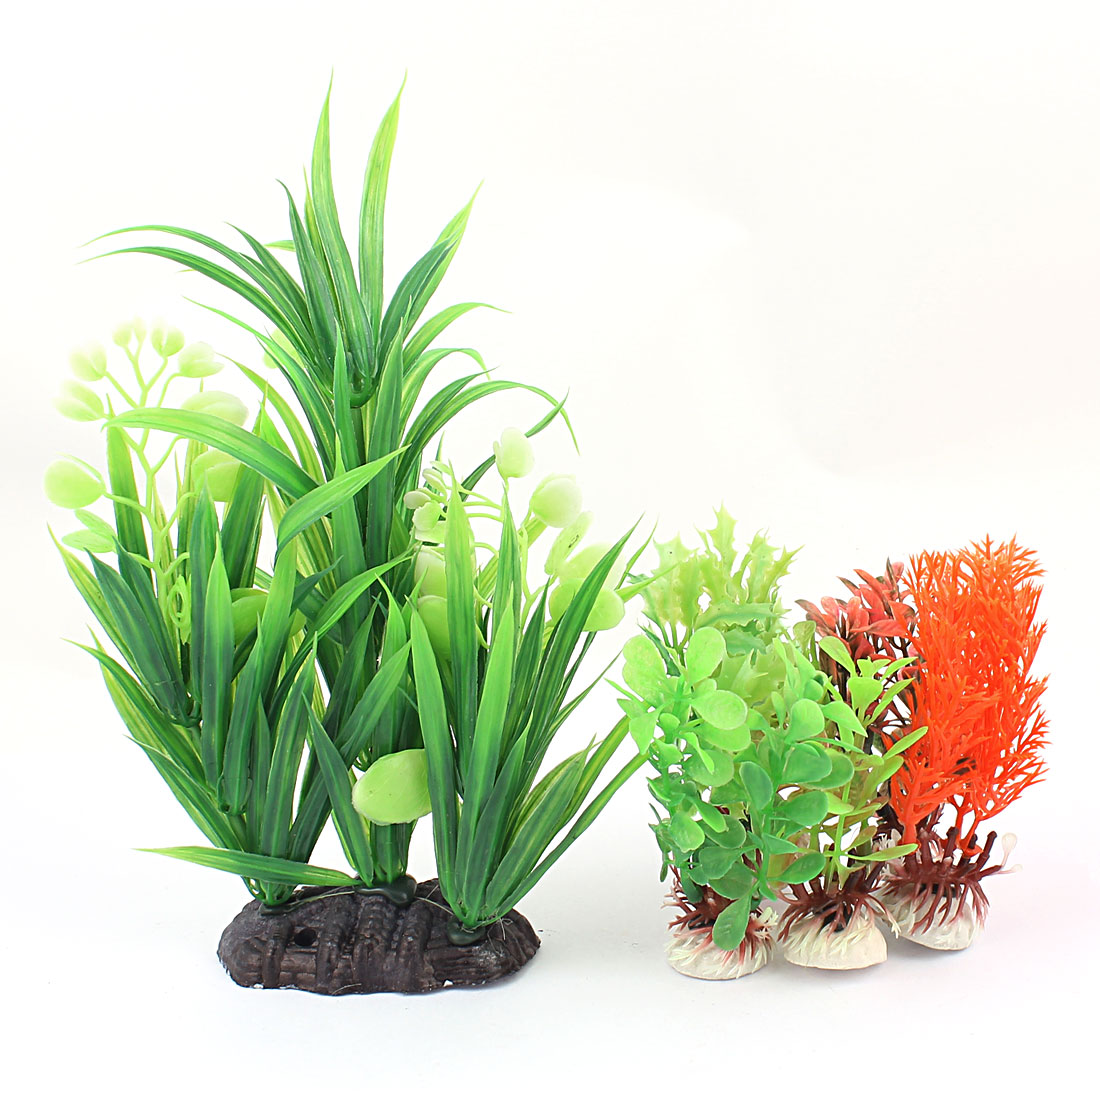 Plastic Underwater Manmade Plant Fish Tank Aquarium Decoration 6PCS